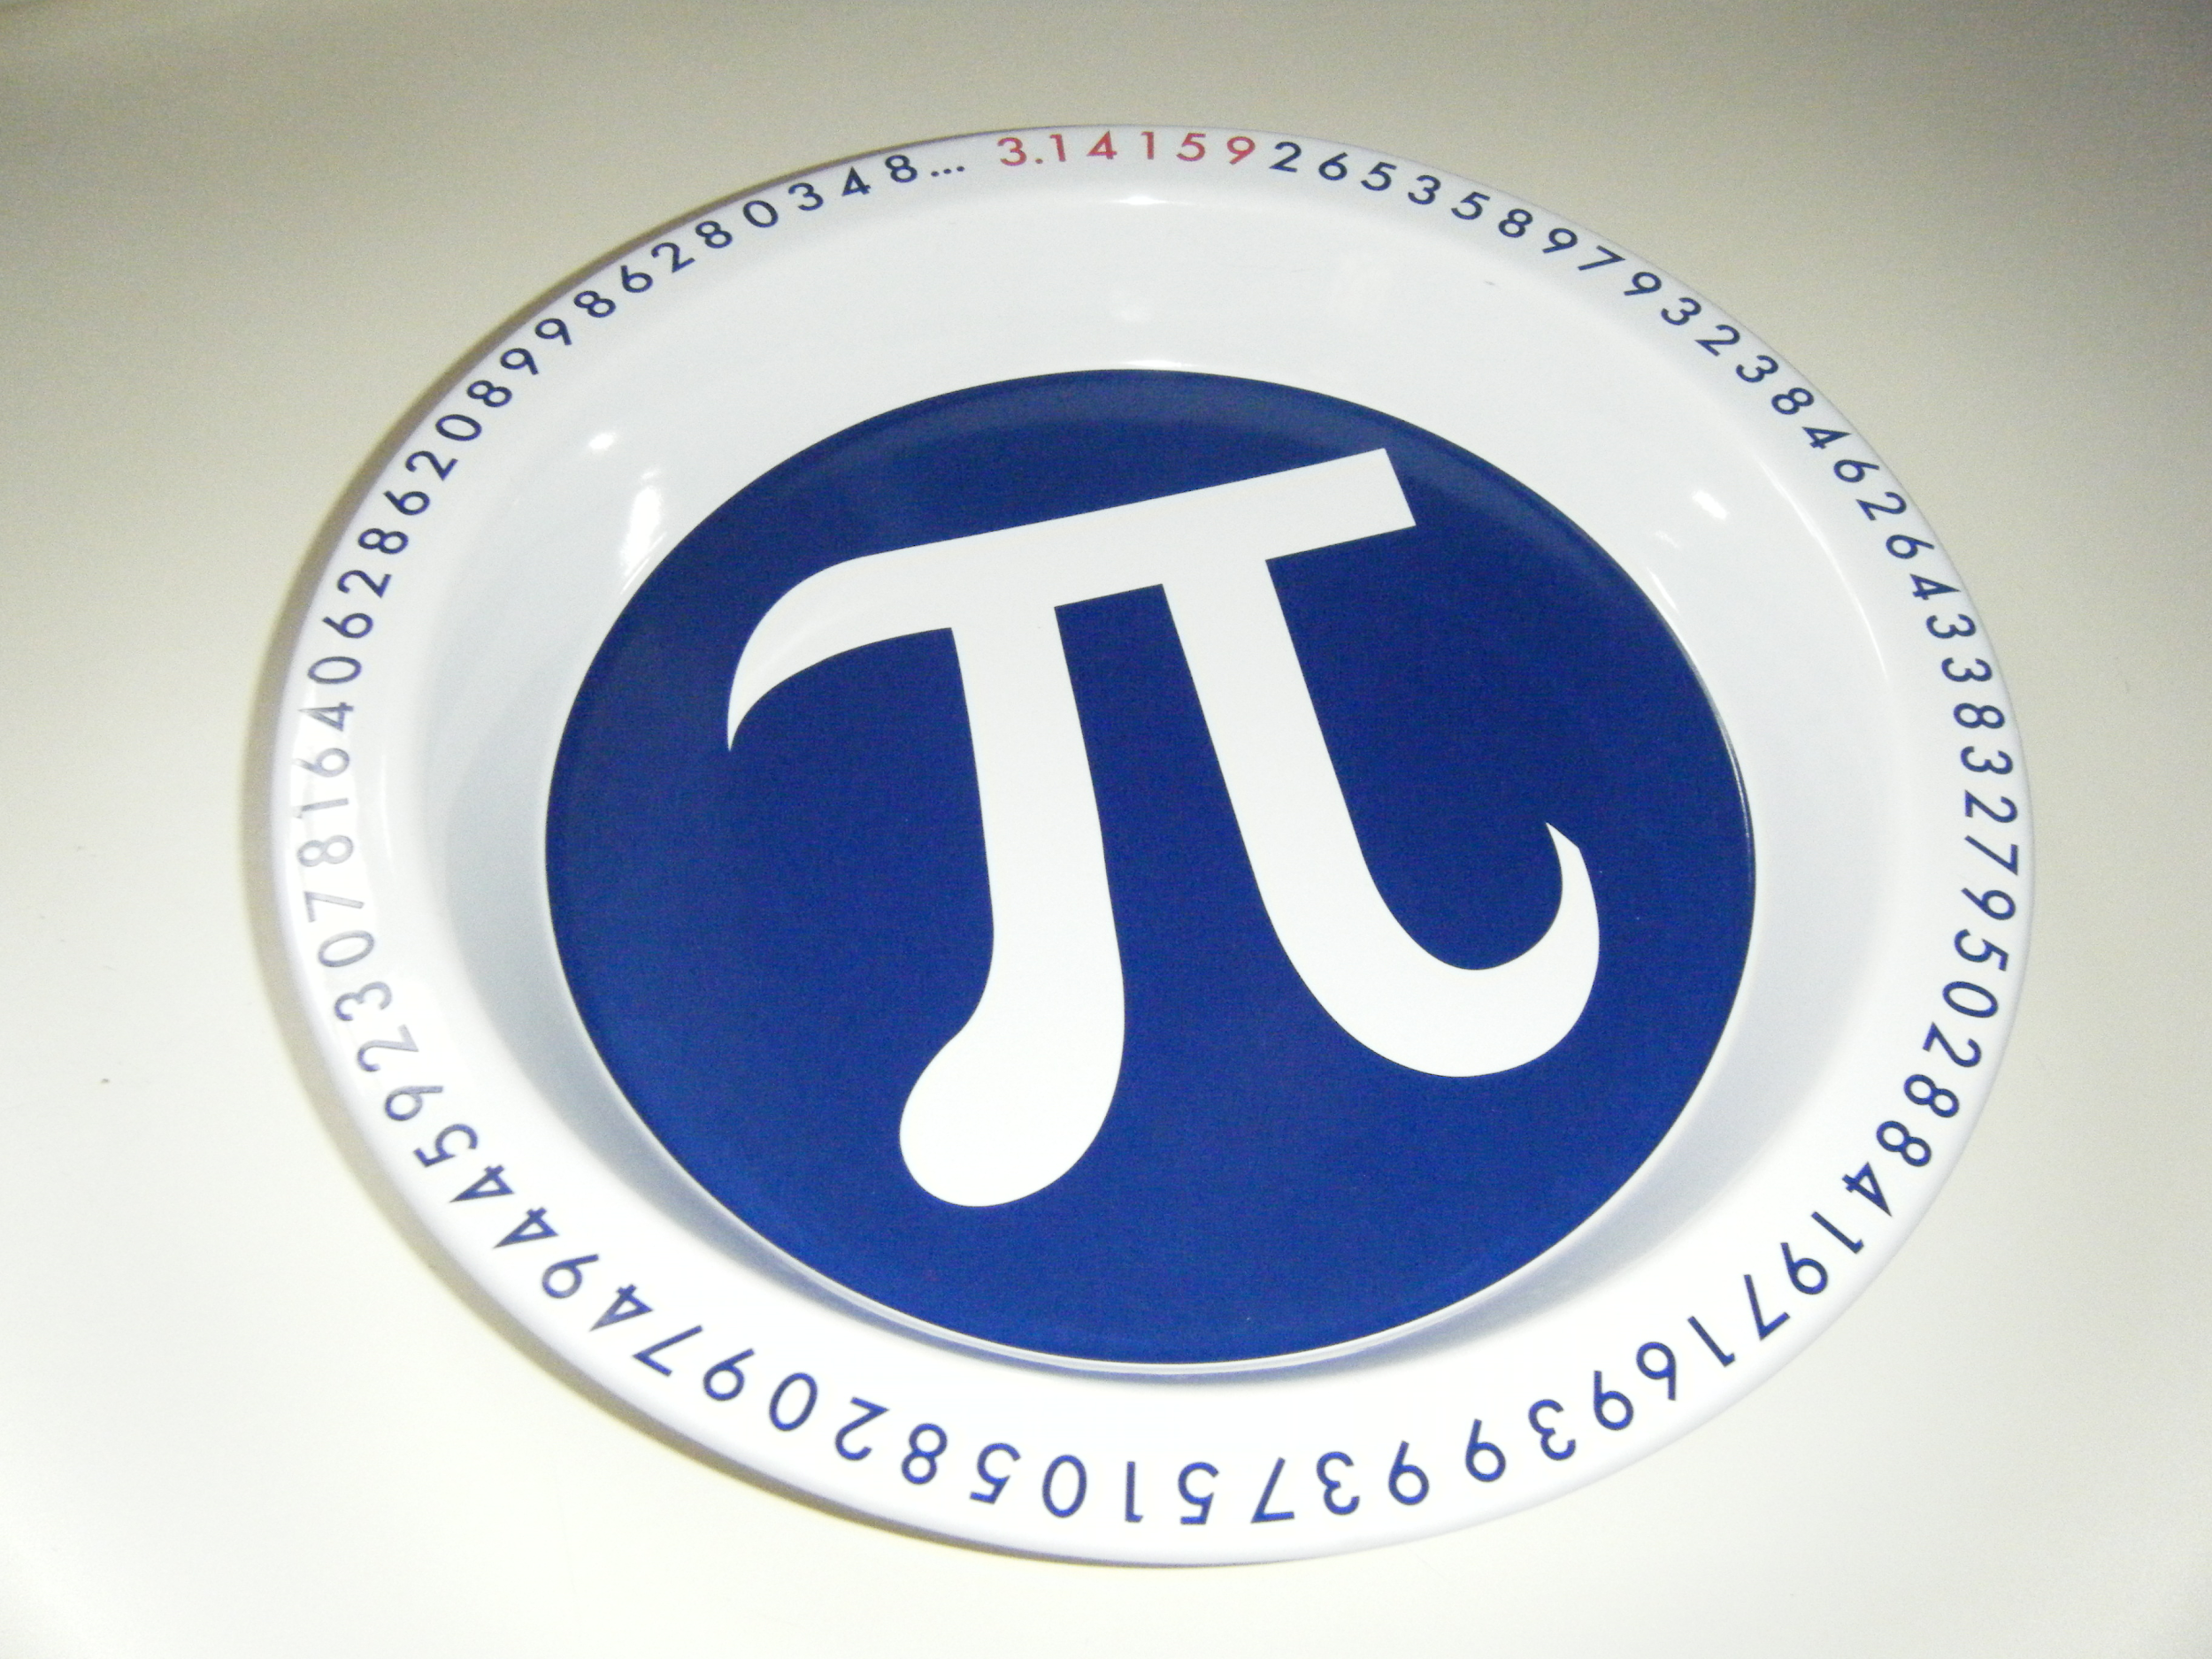 A plate with a pi symbol on it